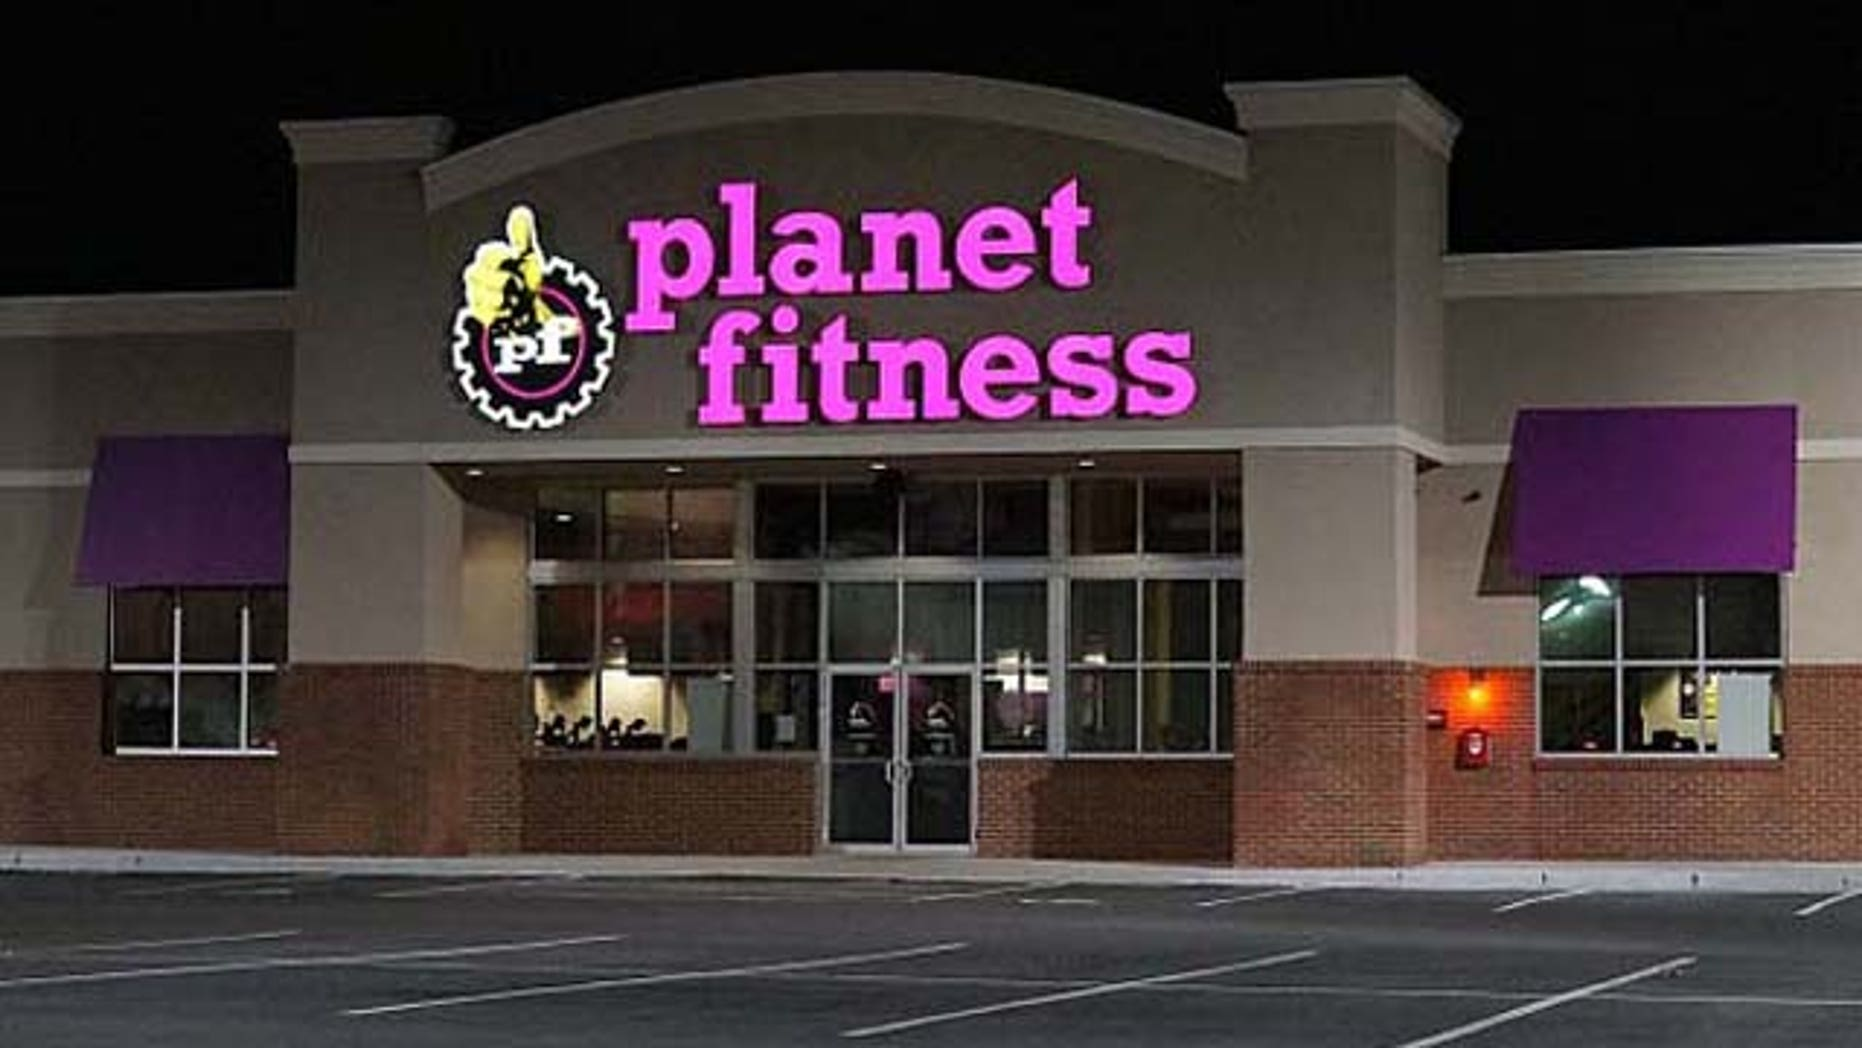 Planet Fitness.